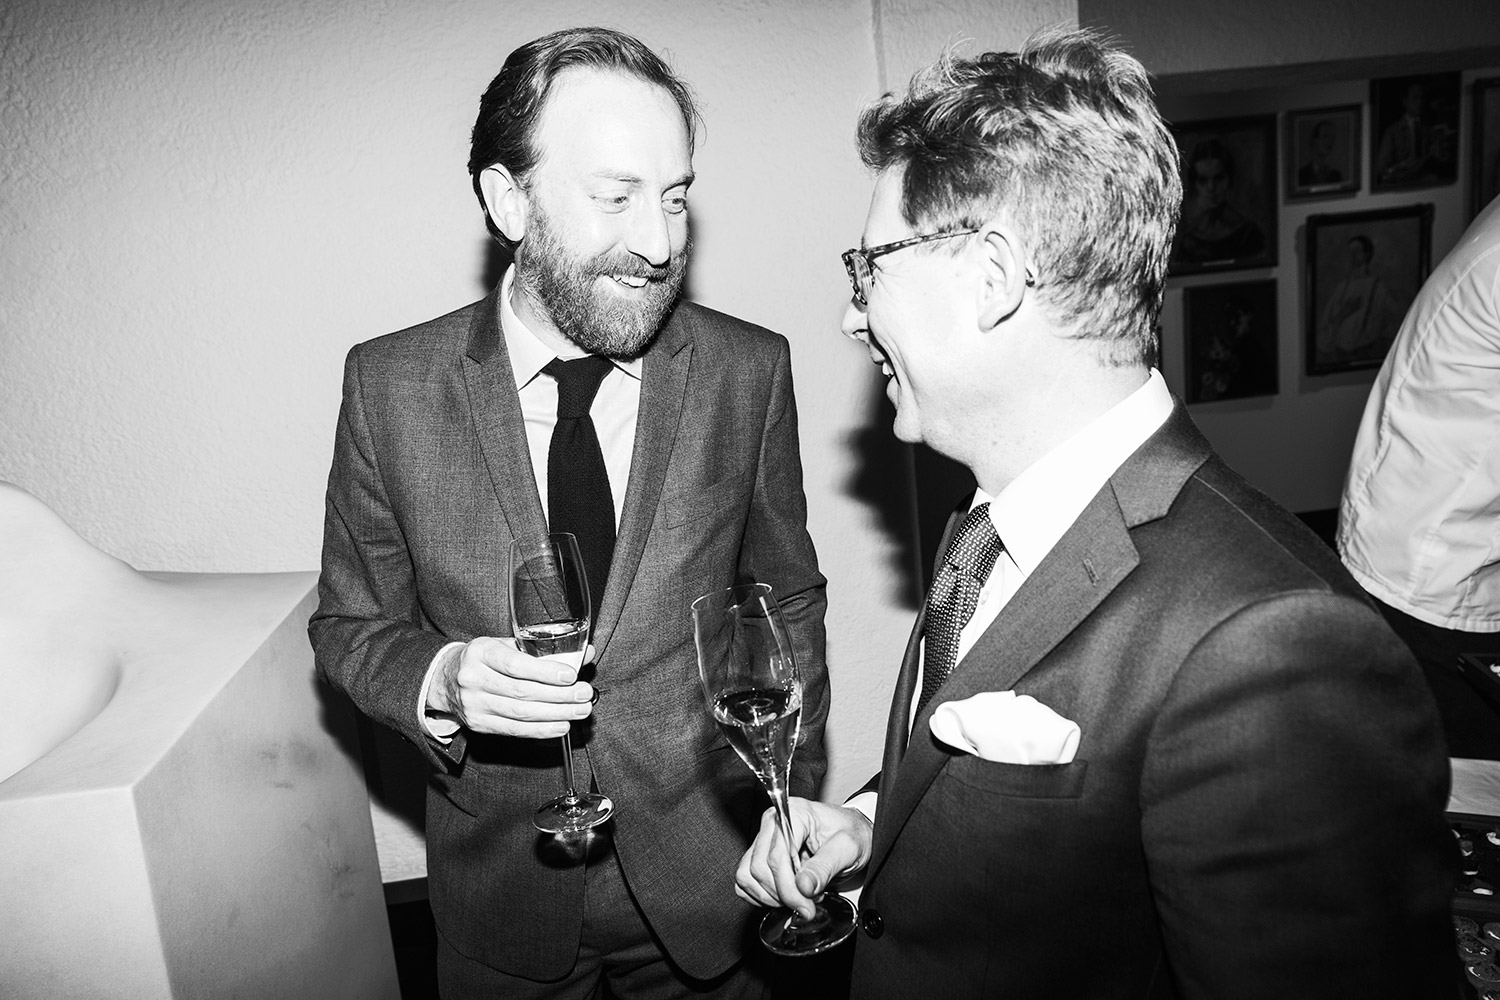 Simon Baker & Niclas Östlind. Photo: Emma Svensson/Hasselblad Foundation